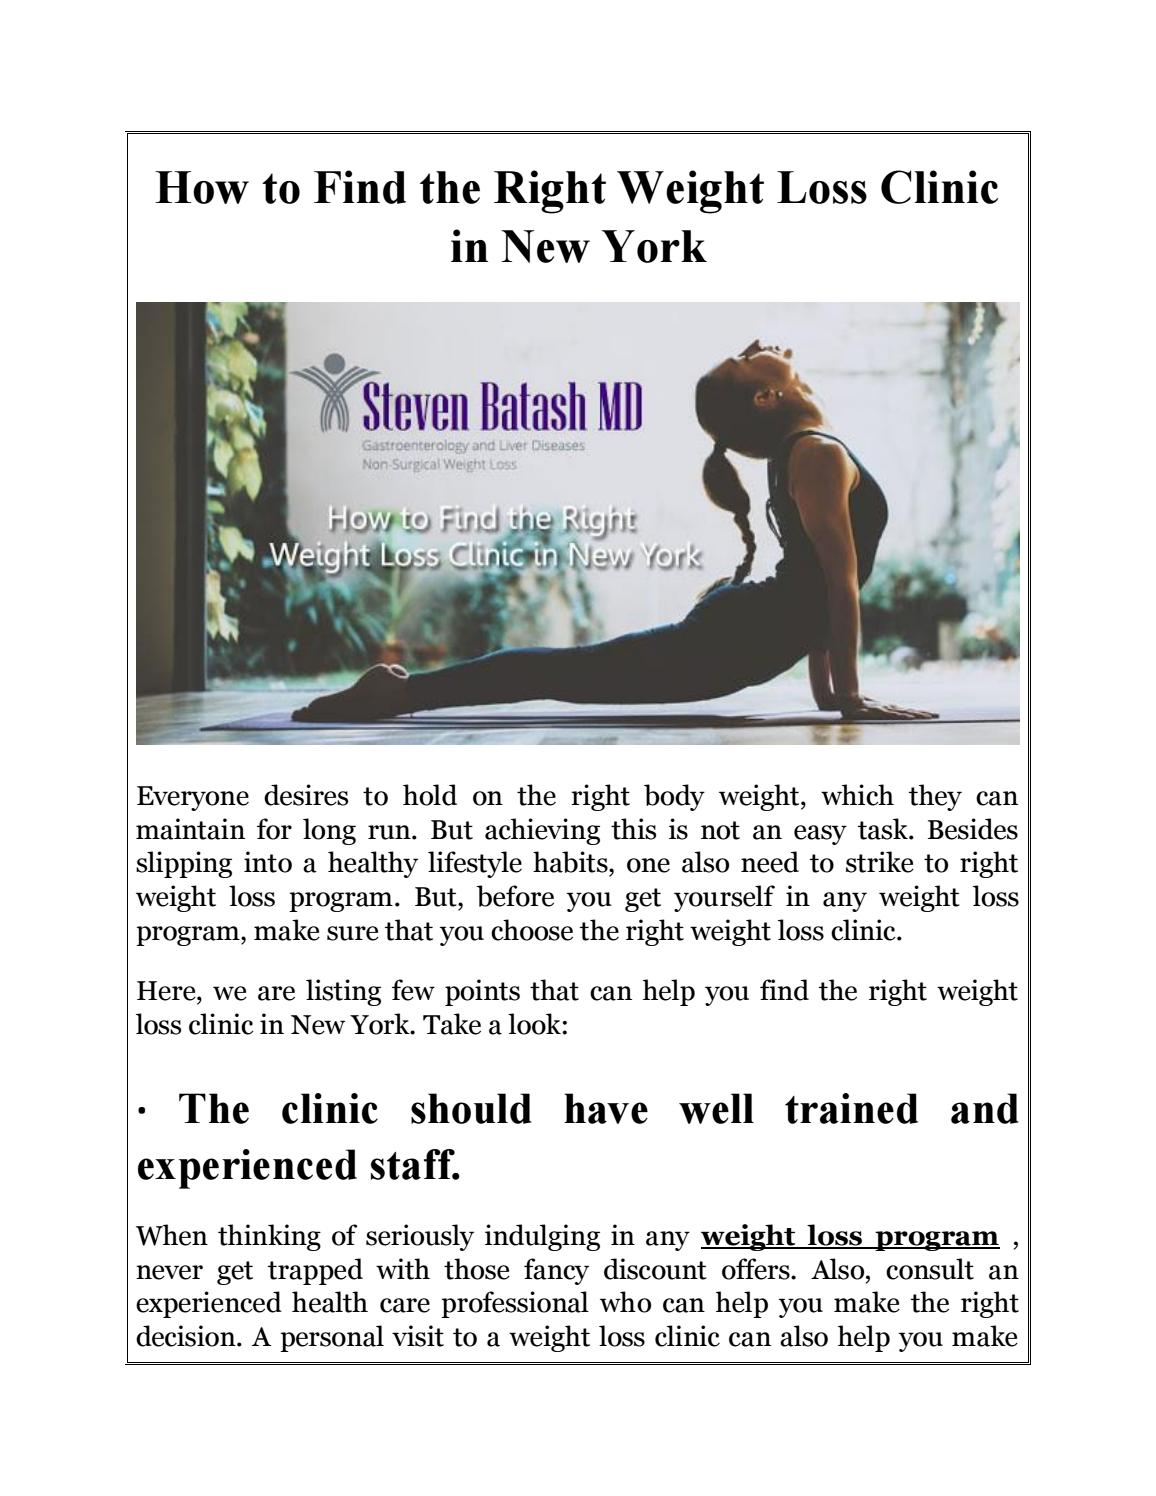 How To Find The Right Weight Loss Clinic In New York By Steven